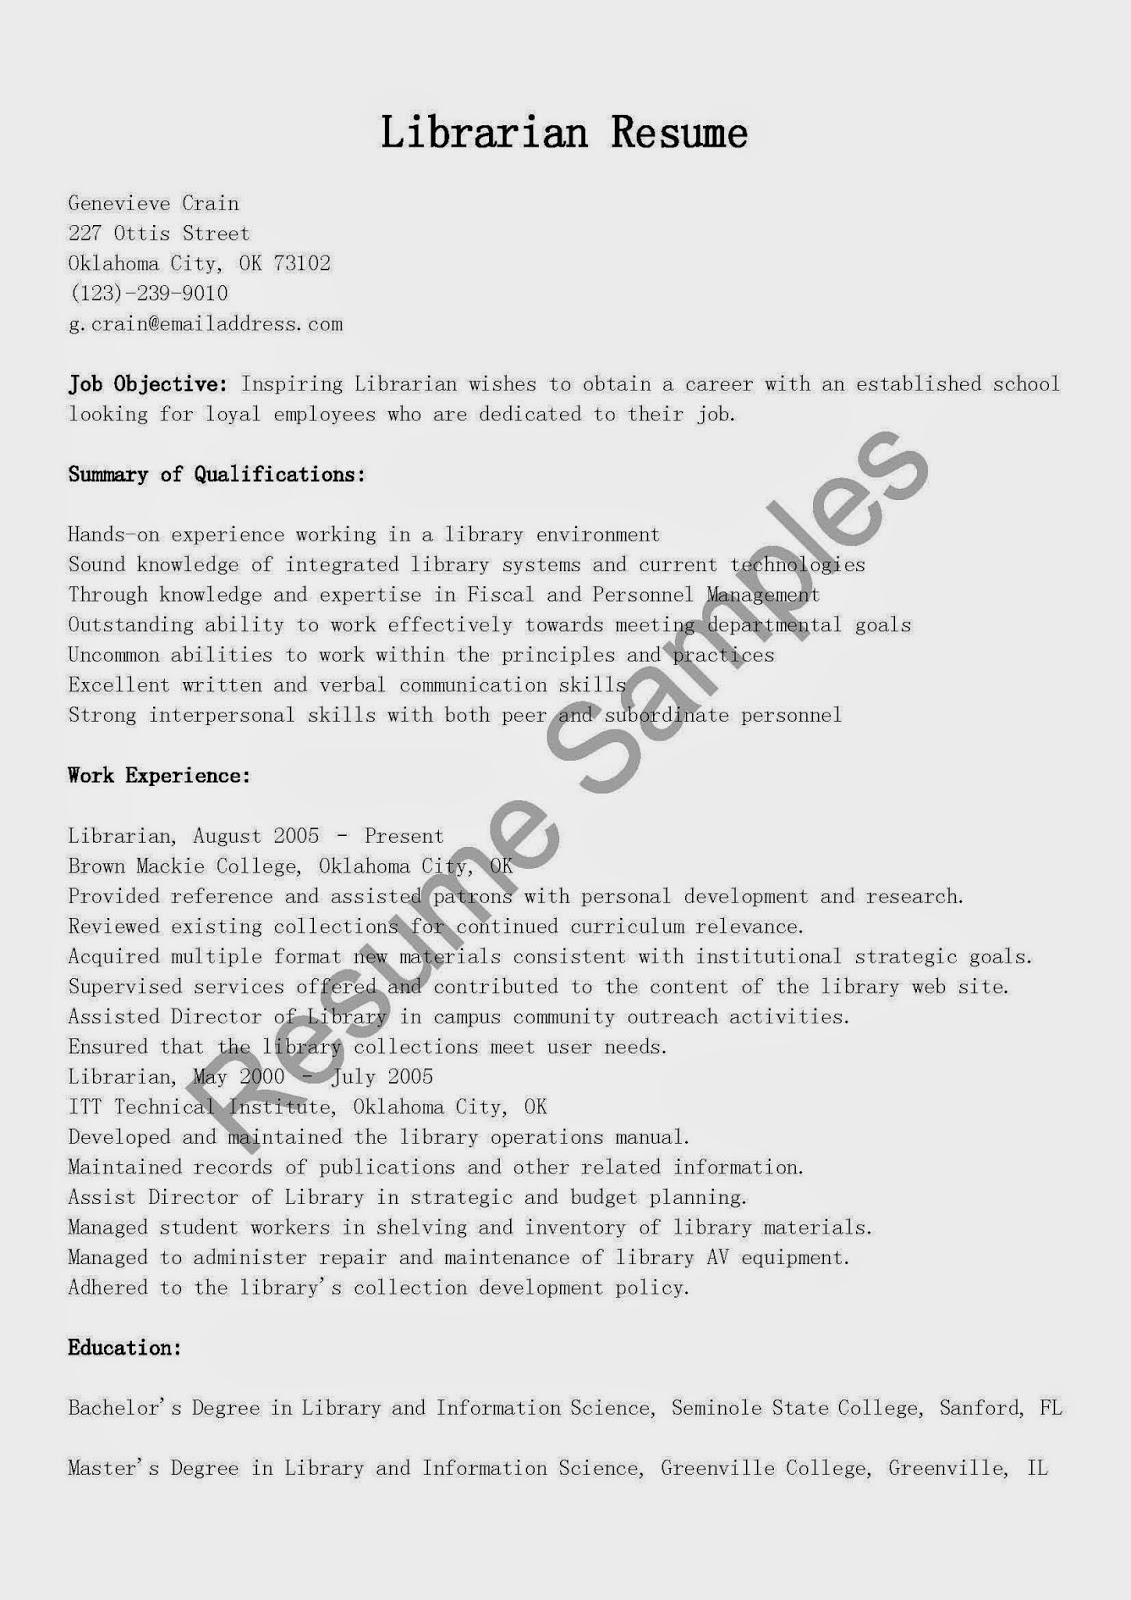 Librarian Resume Objective Resume Samples Librarian Resume Sample